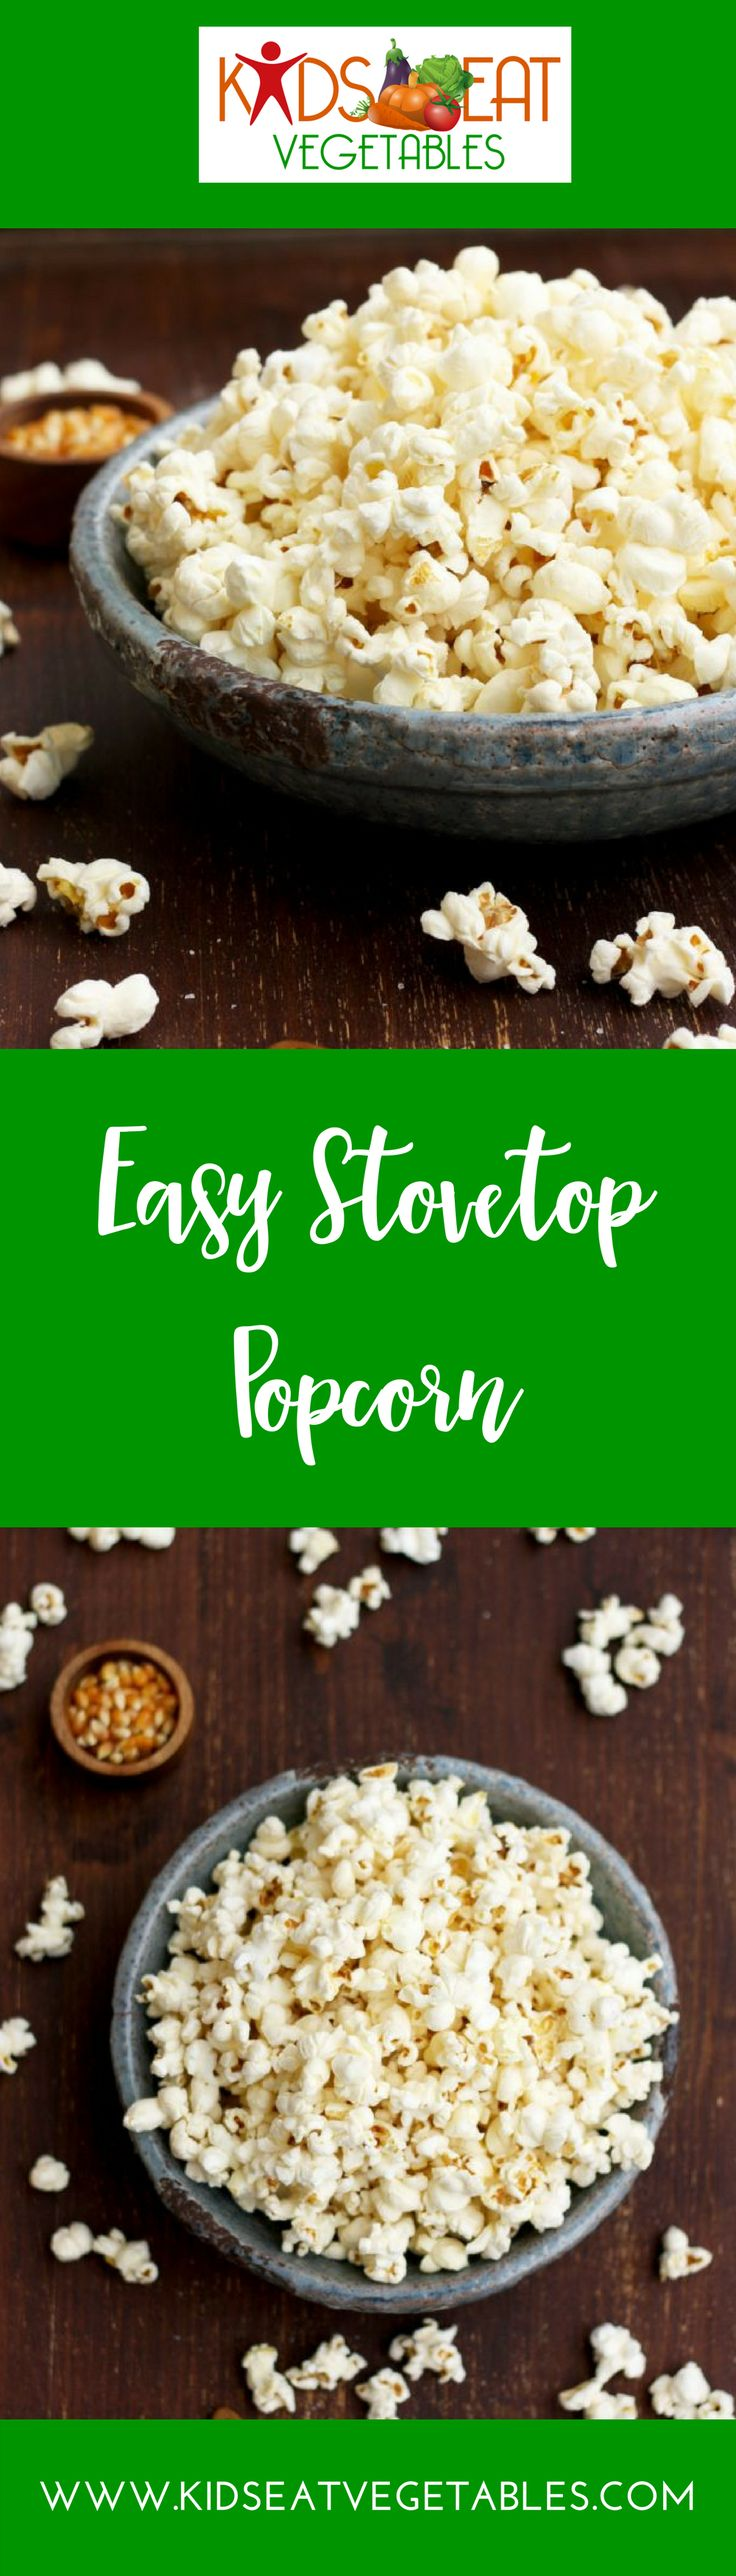 Do you want to know how to make a perfect batch of popcorn, with no burnt kernels? Check this easy stove-top popcorn recipe.